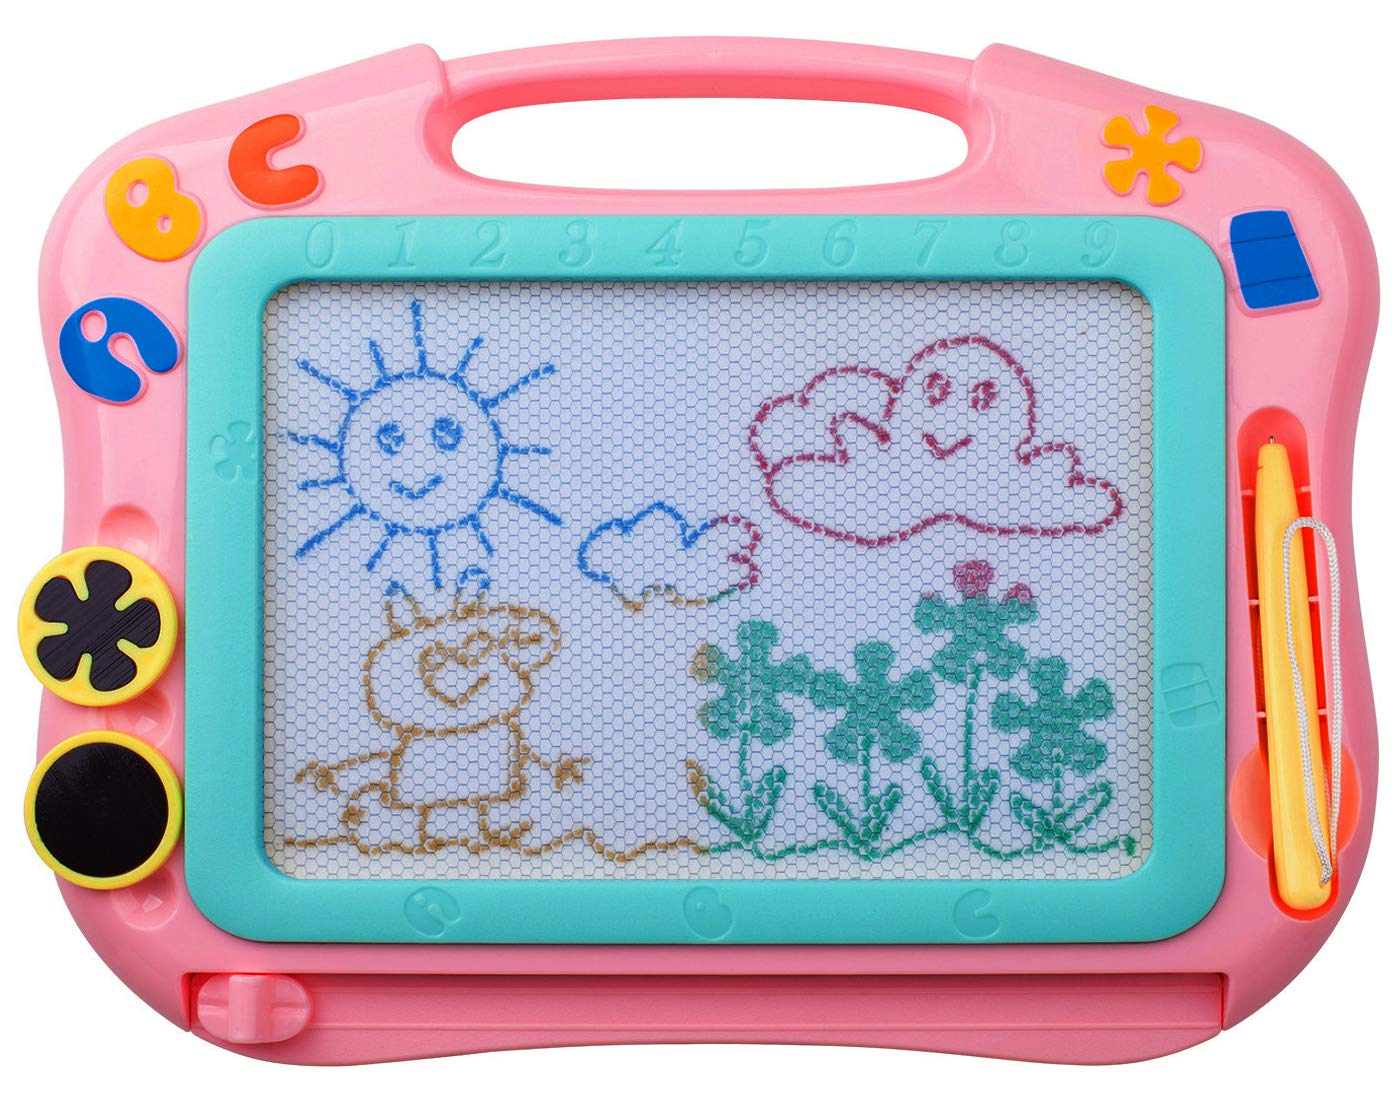 ikidsislands IKS85P [Travel Size] Color Magnetic Drawing Board for Kids, Doodle Board for Toddlers, Sketch Pad Toy for Little Girls (Pink)